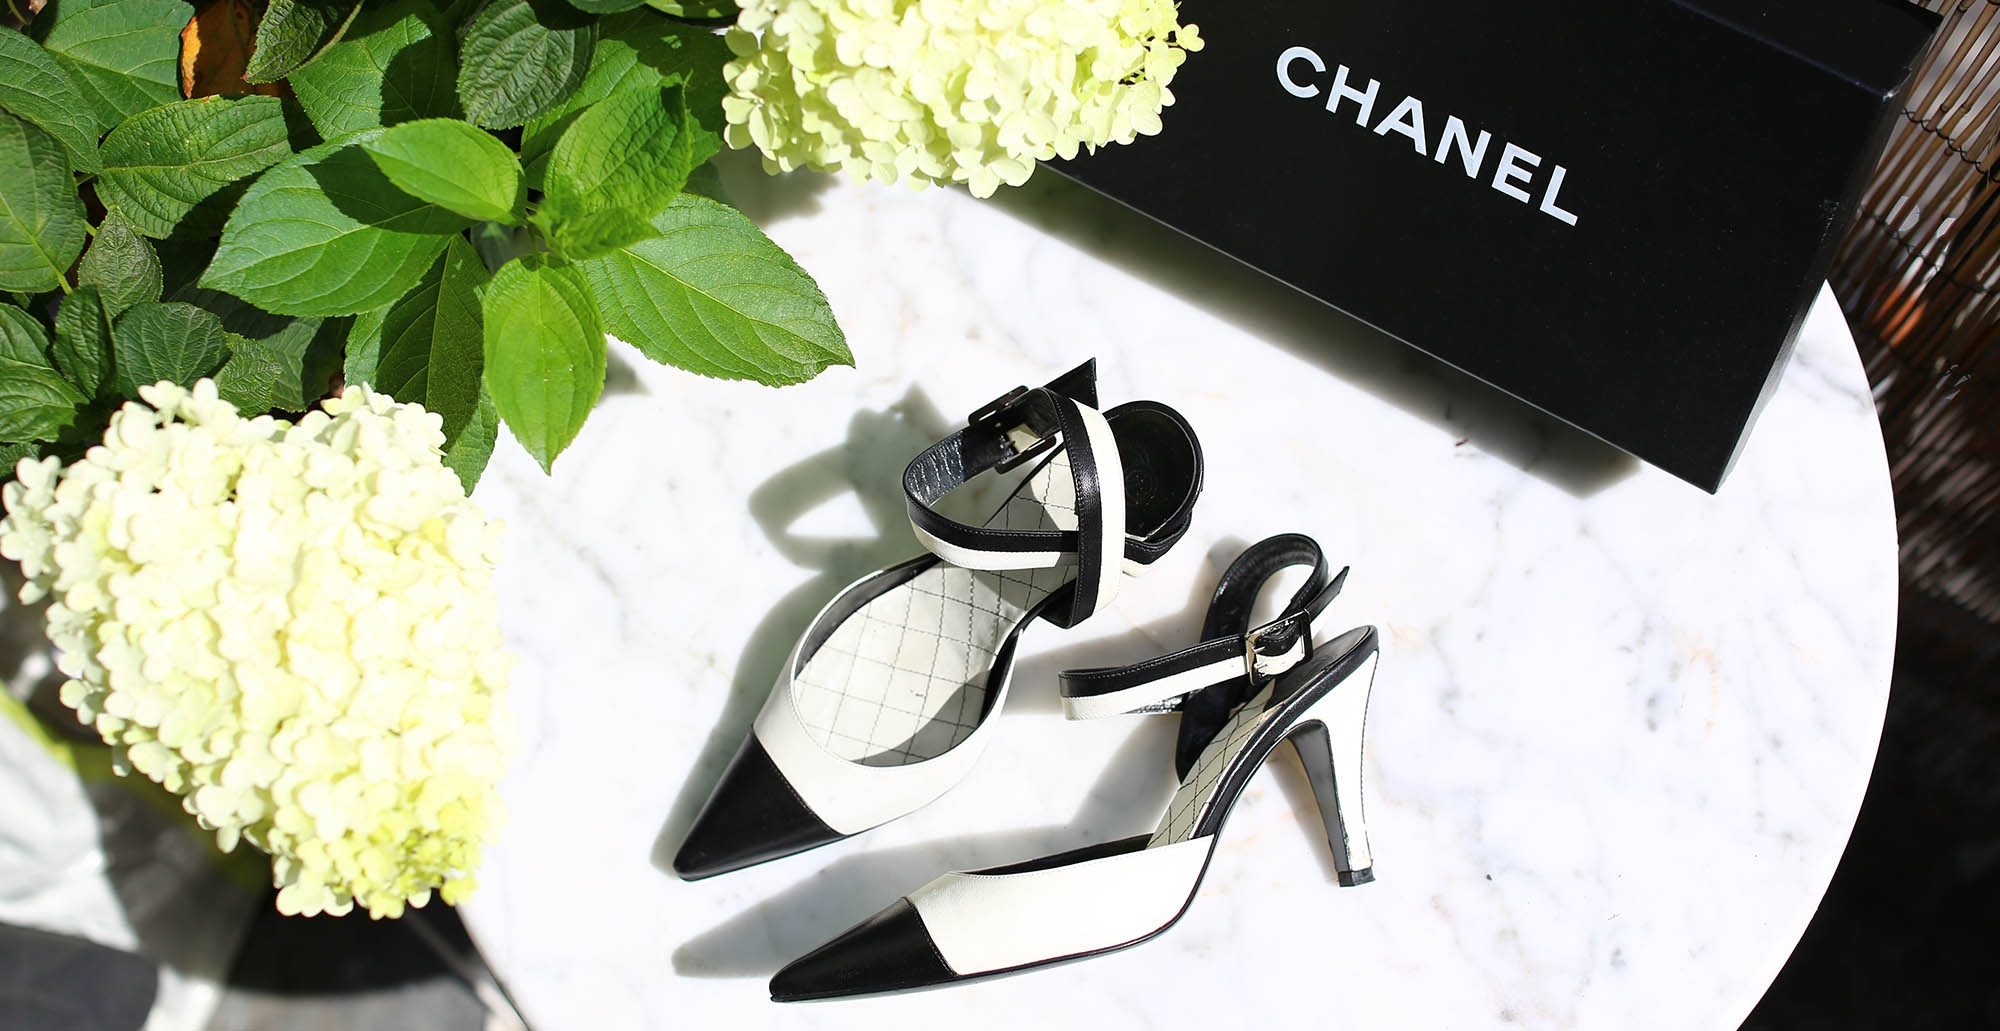 CHANEL black and white low heel pumps authentique leather sandales peep toe petit talon cuir noir et blanc